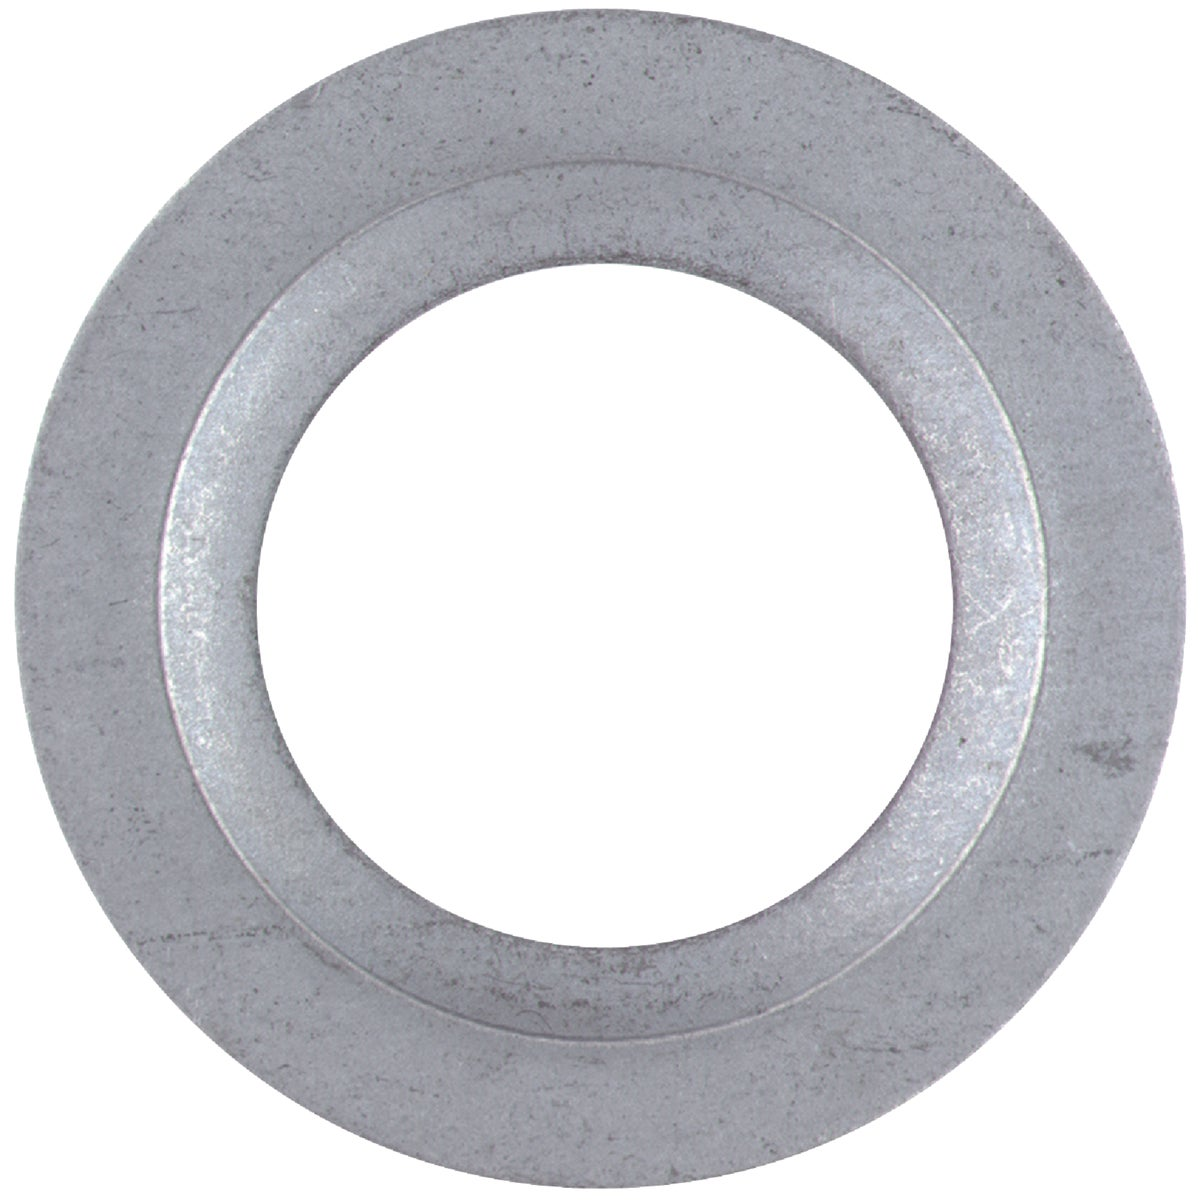 1X1/2 REDUCE WASHER - WA1312 by Thomas & Betts